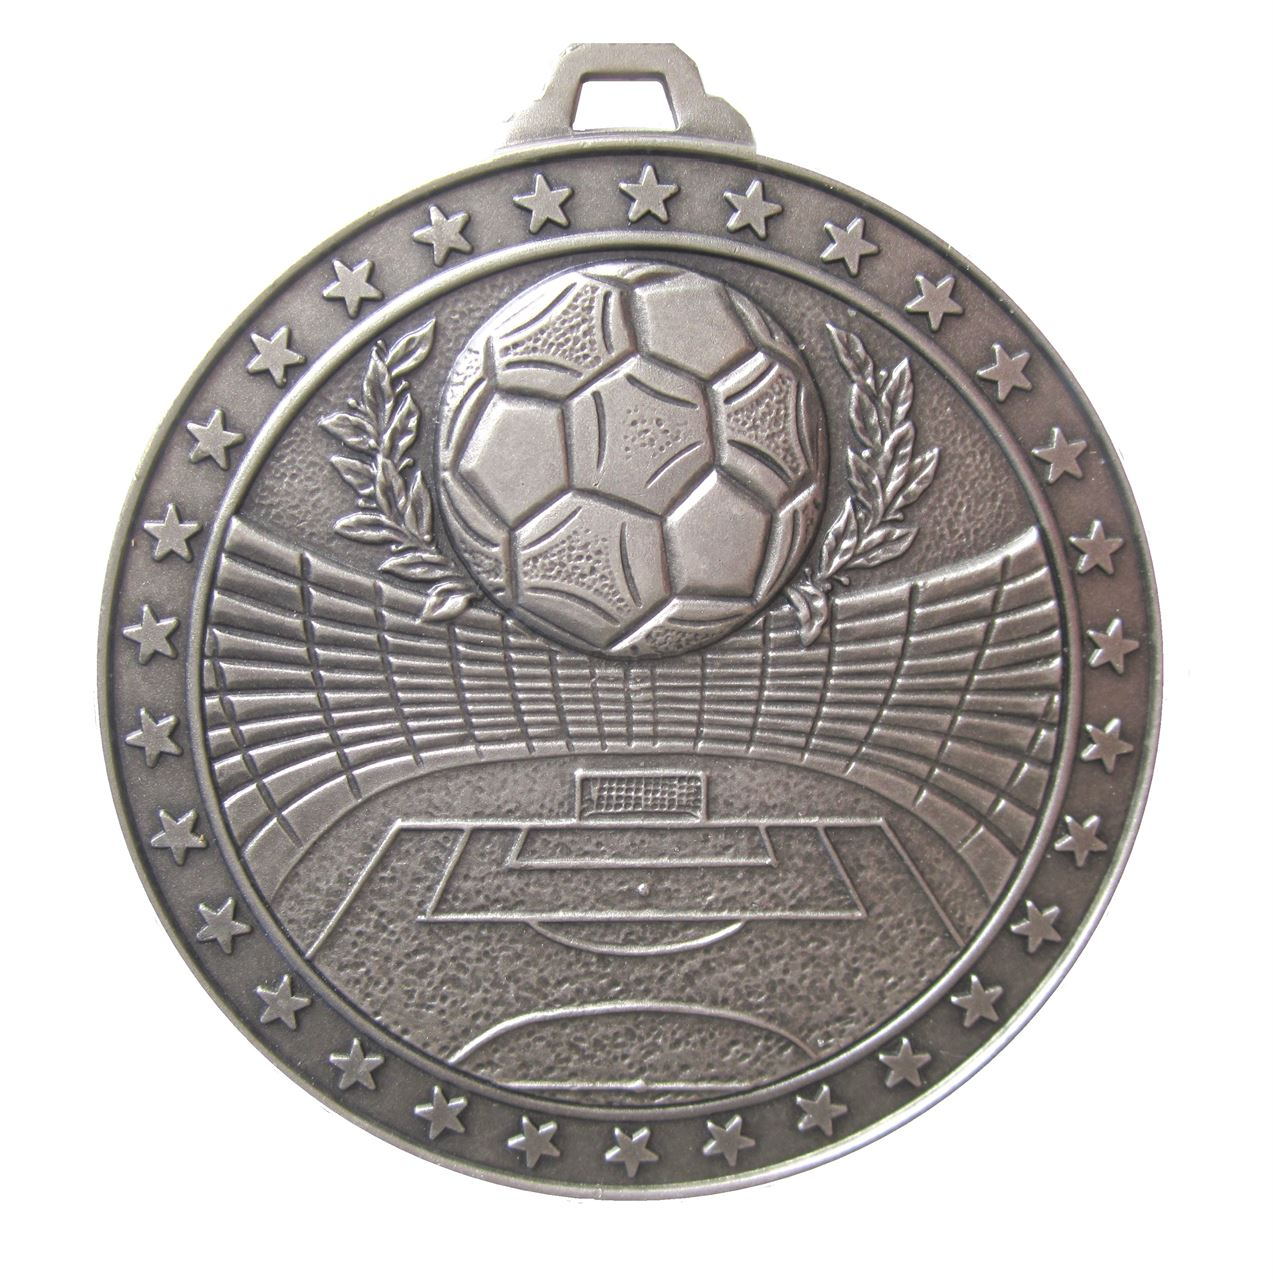 Silver Economy Football Stadium Medal (size: 60mm) - 435E